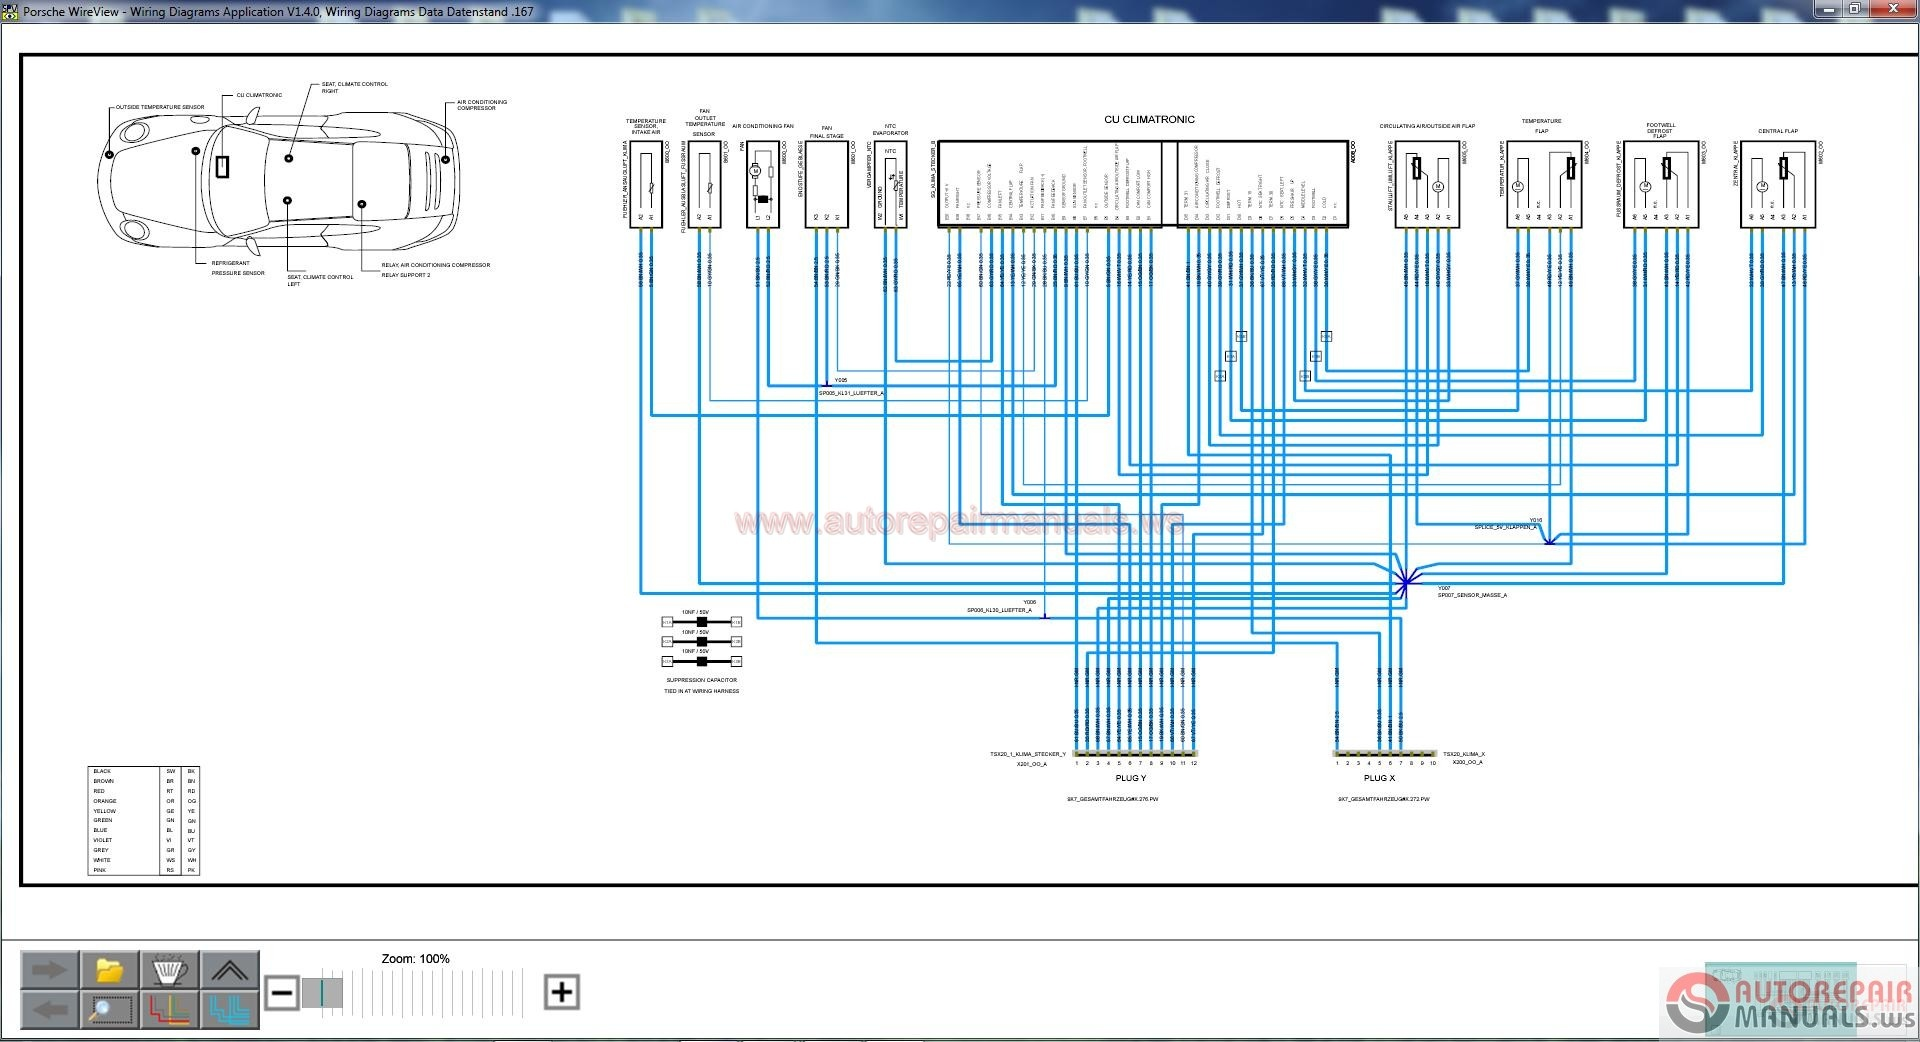 hight resolution of wiring diagram for 2006 porsche cayman simple wiring diagrams rh 38 studio011 de porsche 987 wiring diagram porsche 987 wiring diagram